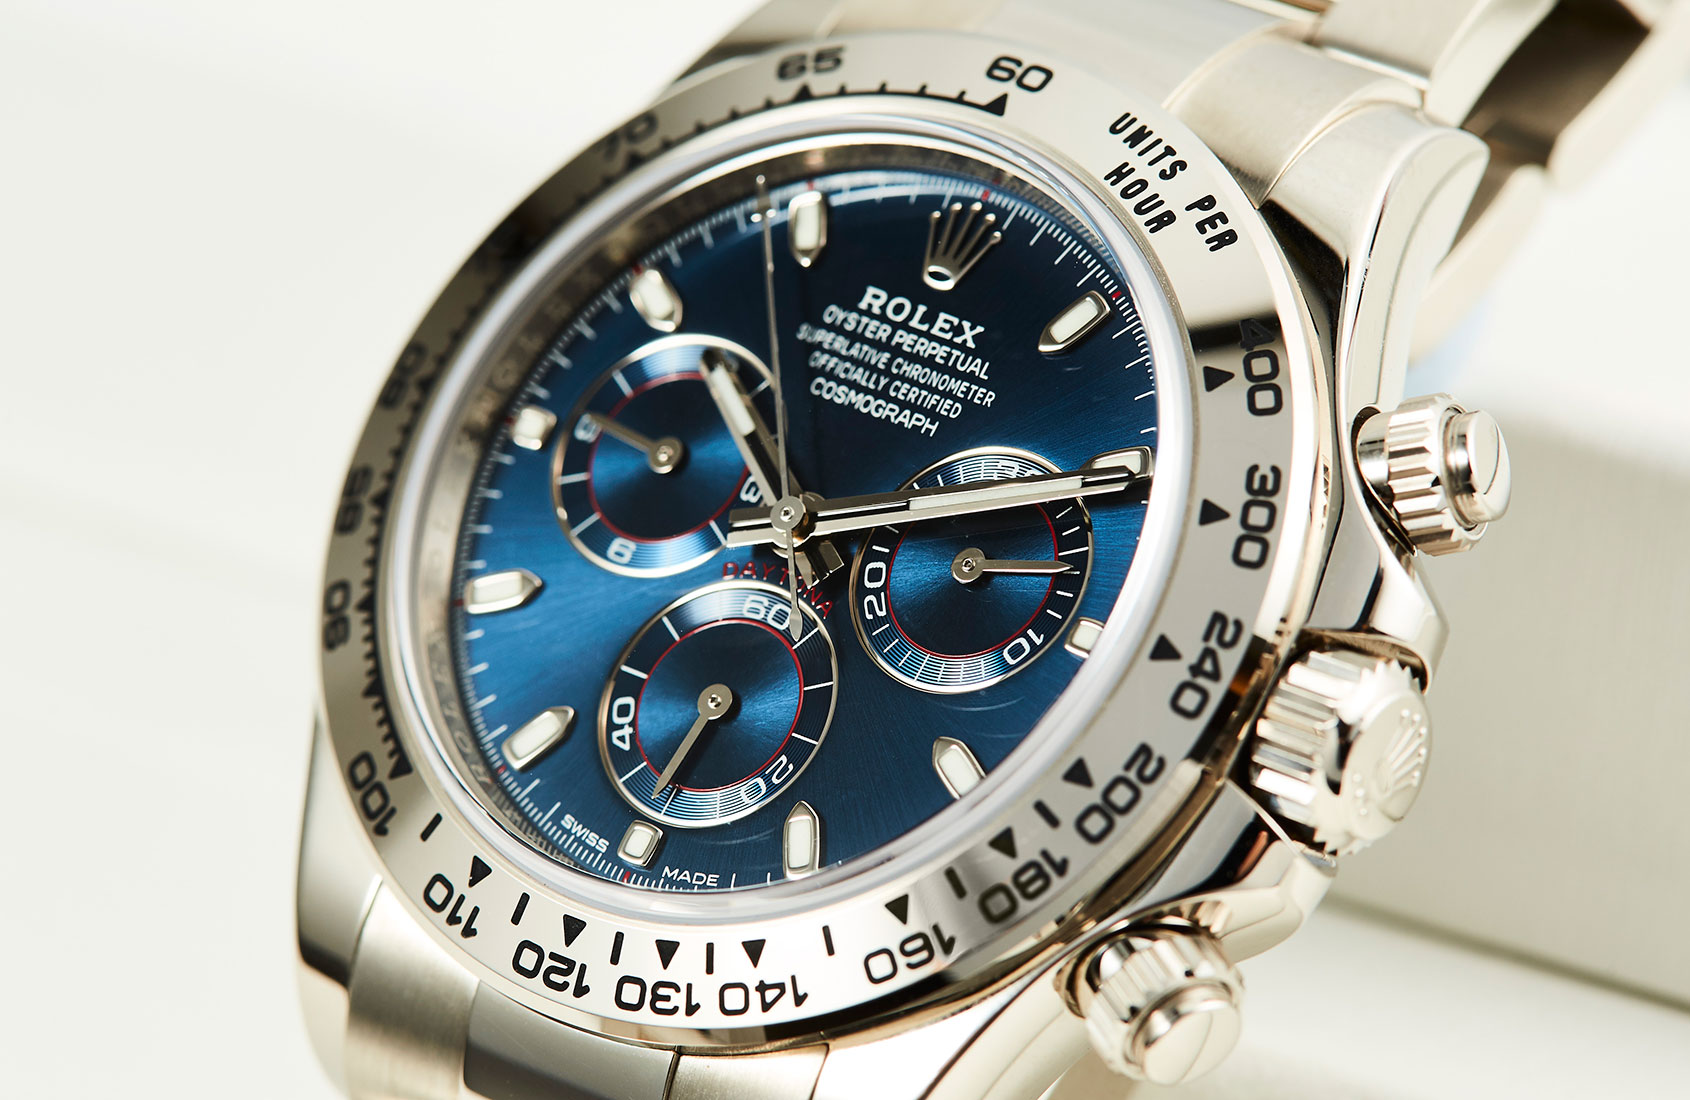 Rolex Daytona In White Gold With Blue Dial Ref 116509 Hands On Review